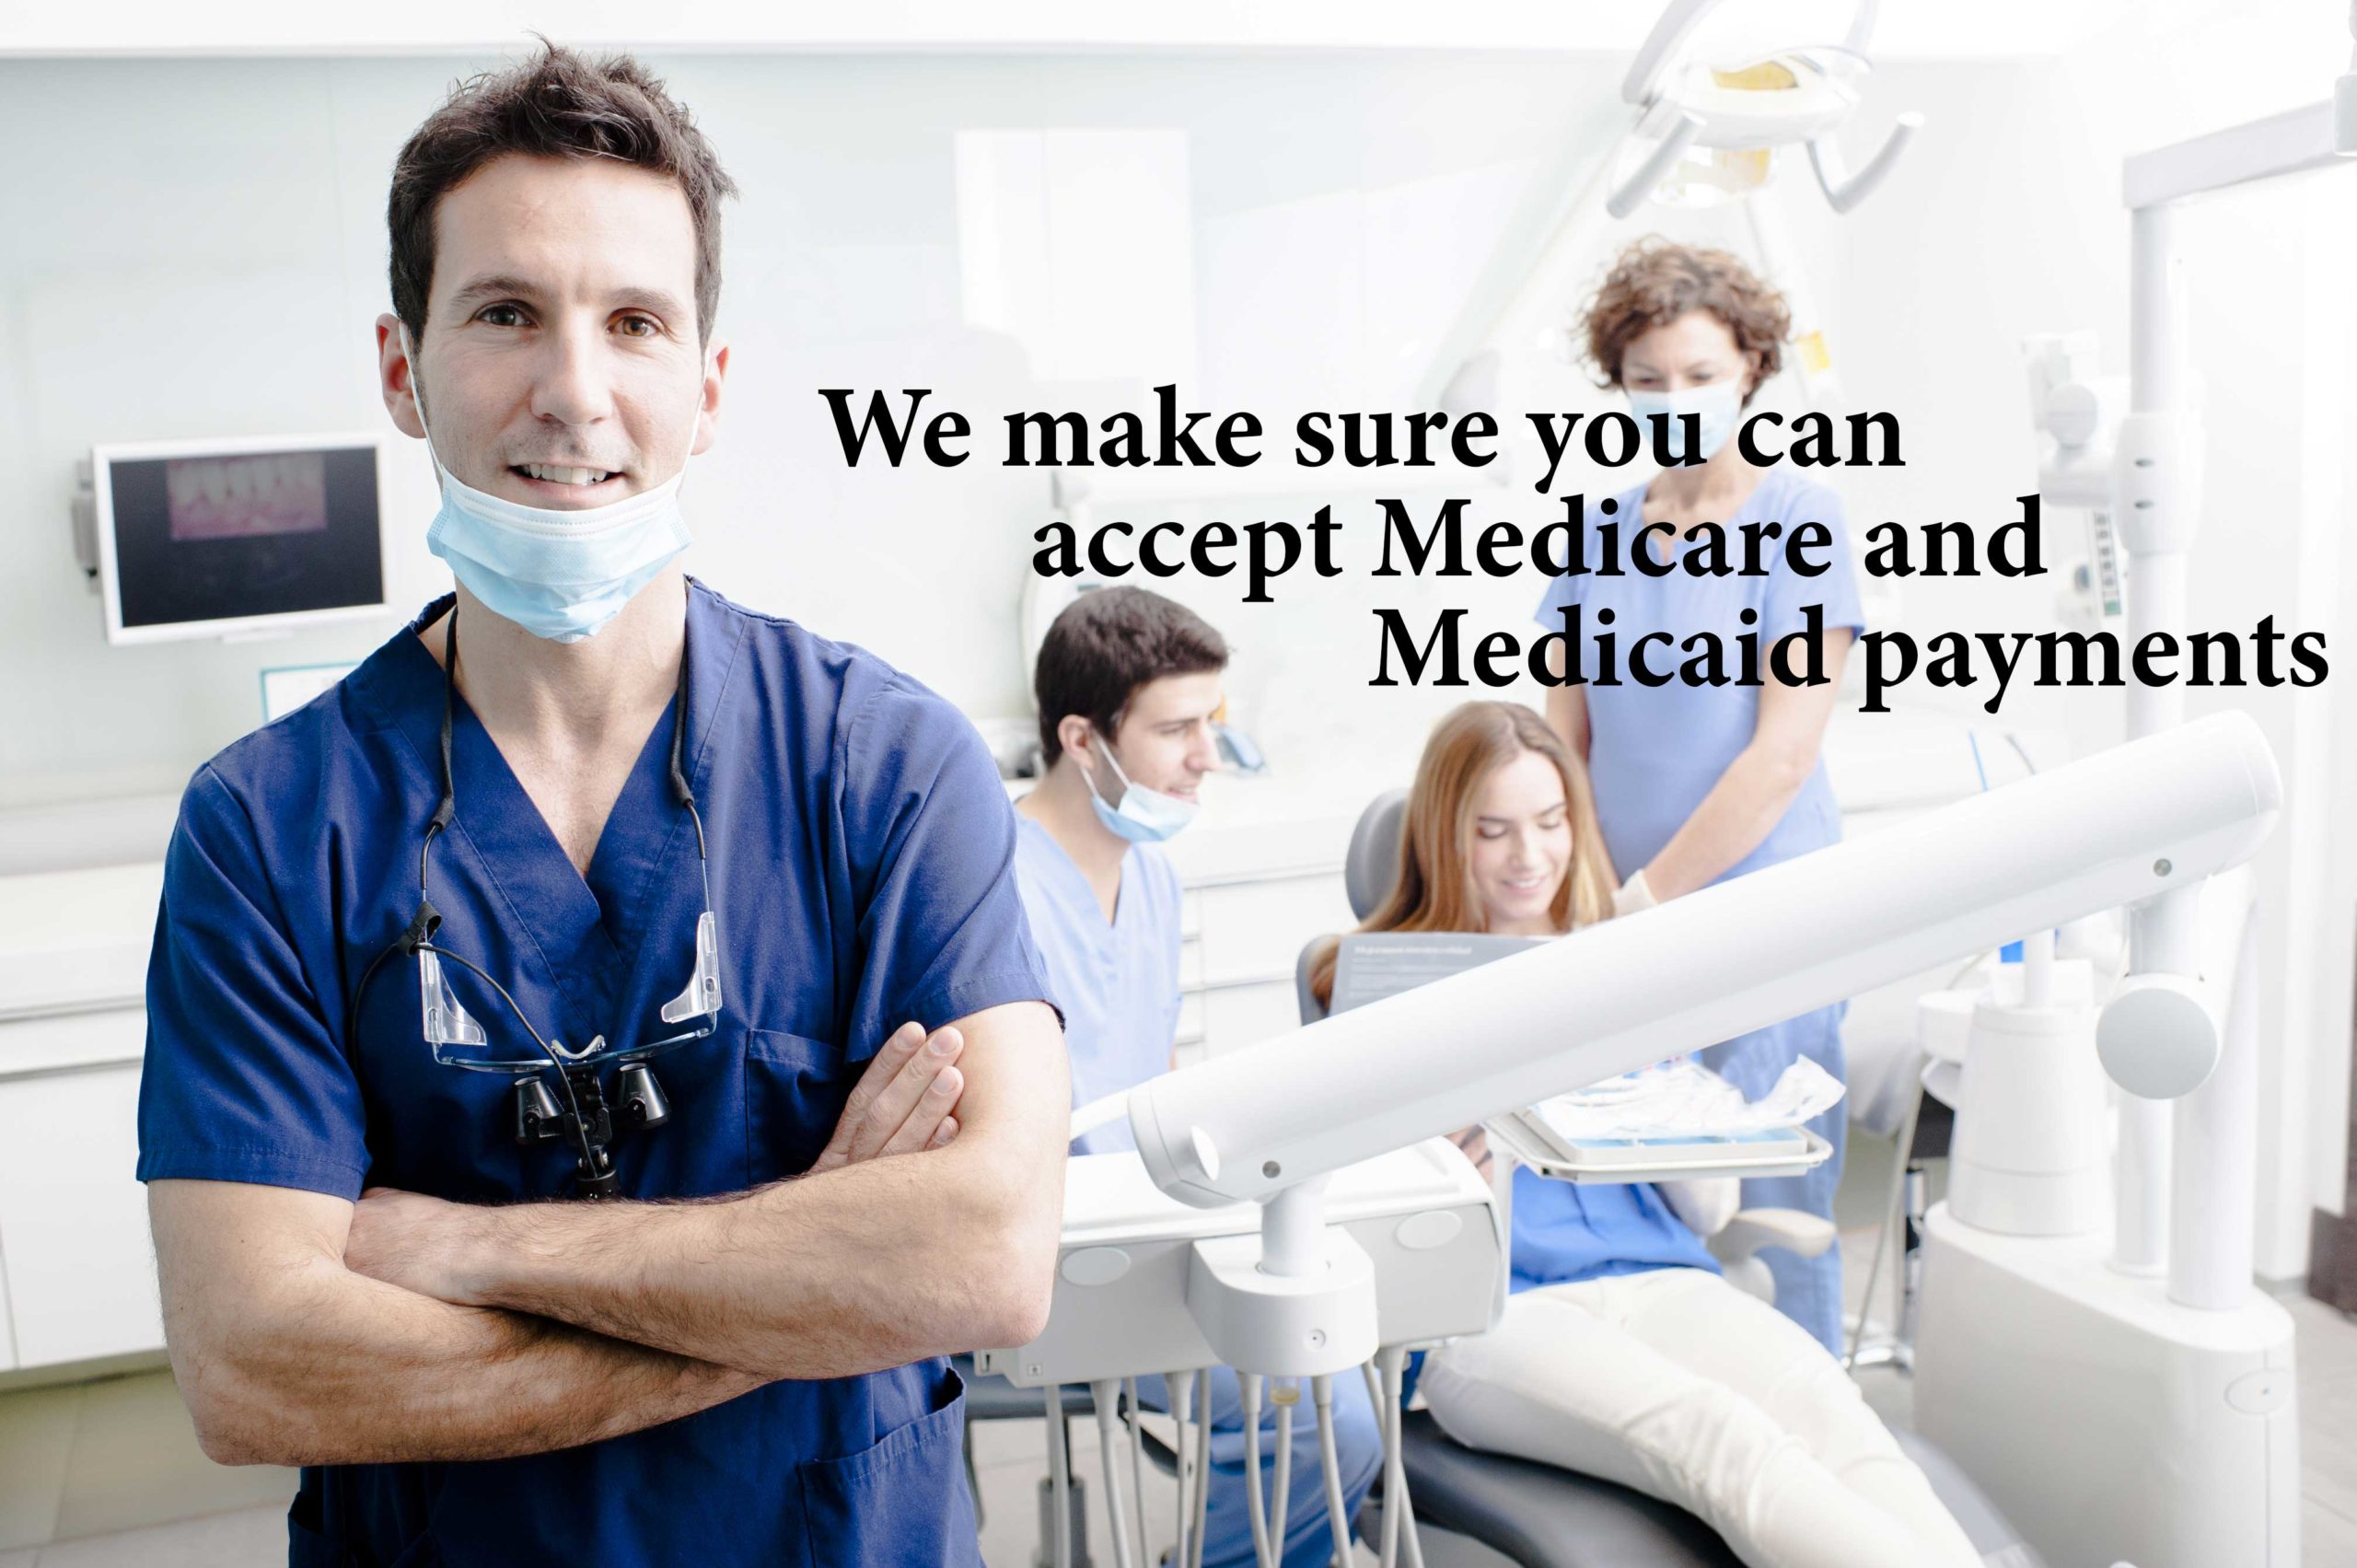 dentists treating patient with medical equipment and caption saying we make sure you can accept medicare and medicaid payments